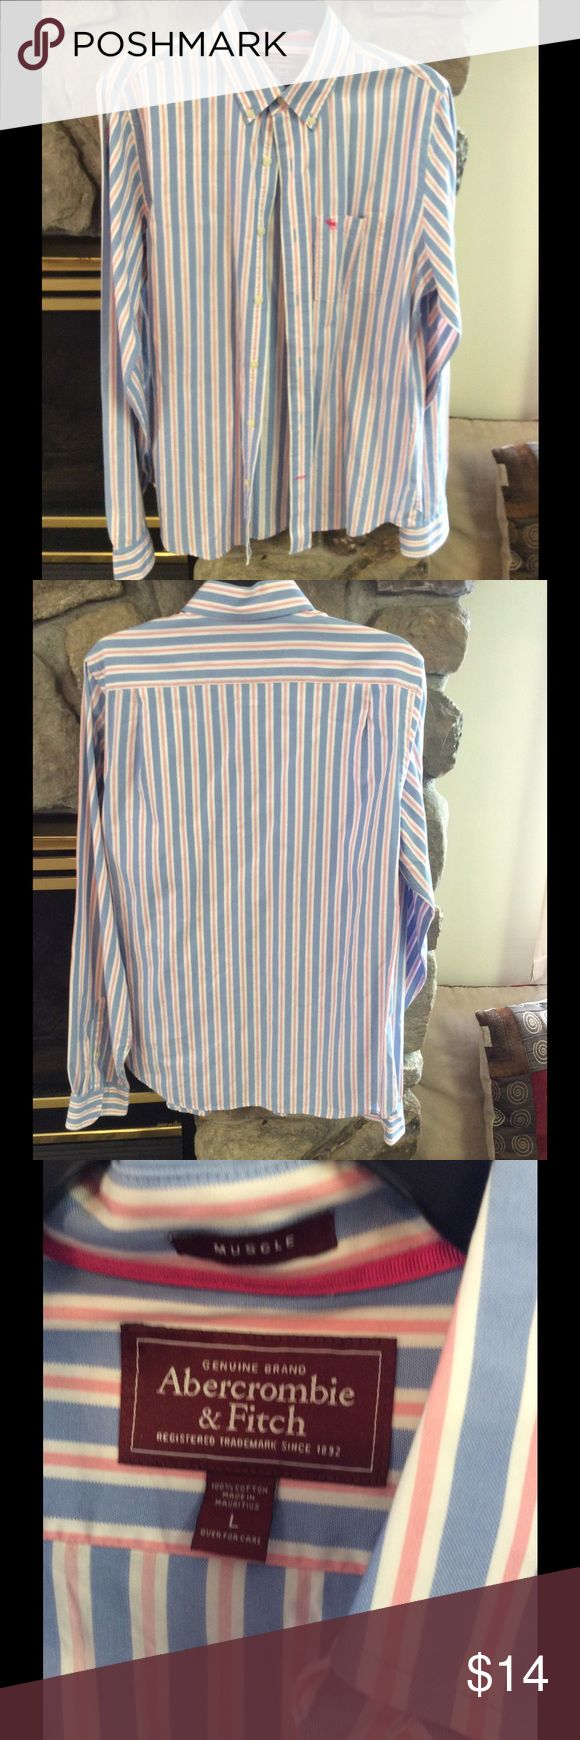 Abercrombie Men's Button Down Shirt Abercrombie men's button down shirt.  Size is large.  This shirt is in excellent condition.  Maybe worn only once or twice.  Size is large.  Bundle to save on shipping. Abercrombie & Fitch Shirts Casual Button Down Shirts